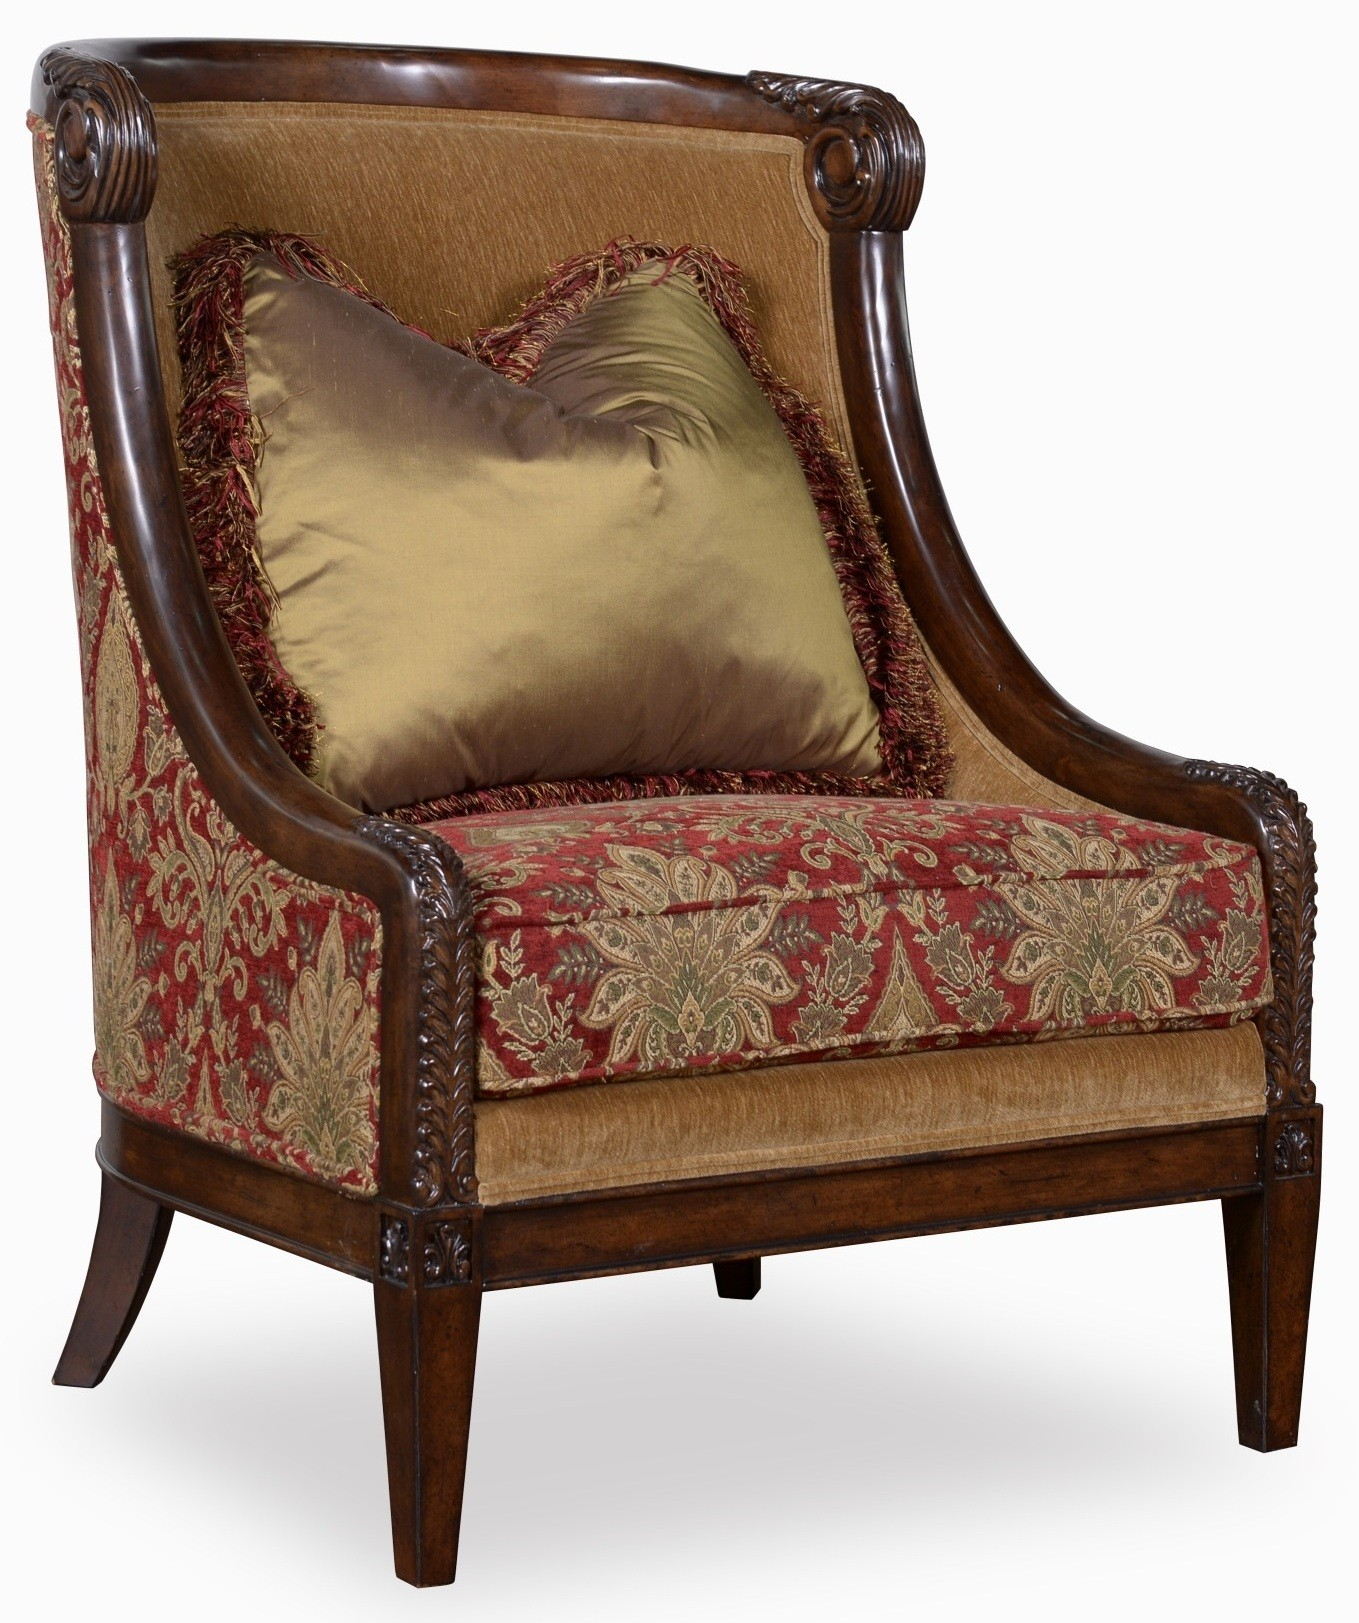 Giovanna Caramel Carved Wood Accent Chair from ART 509534